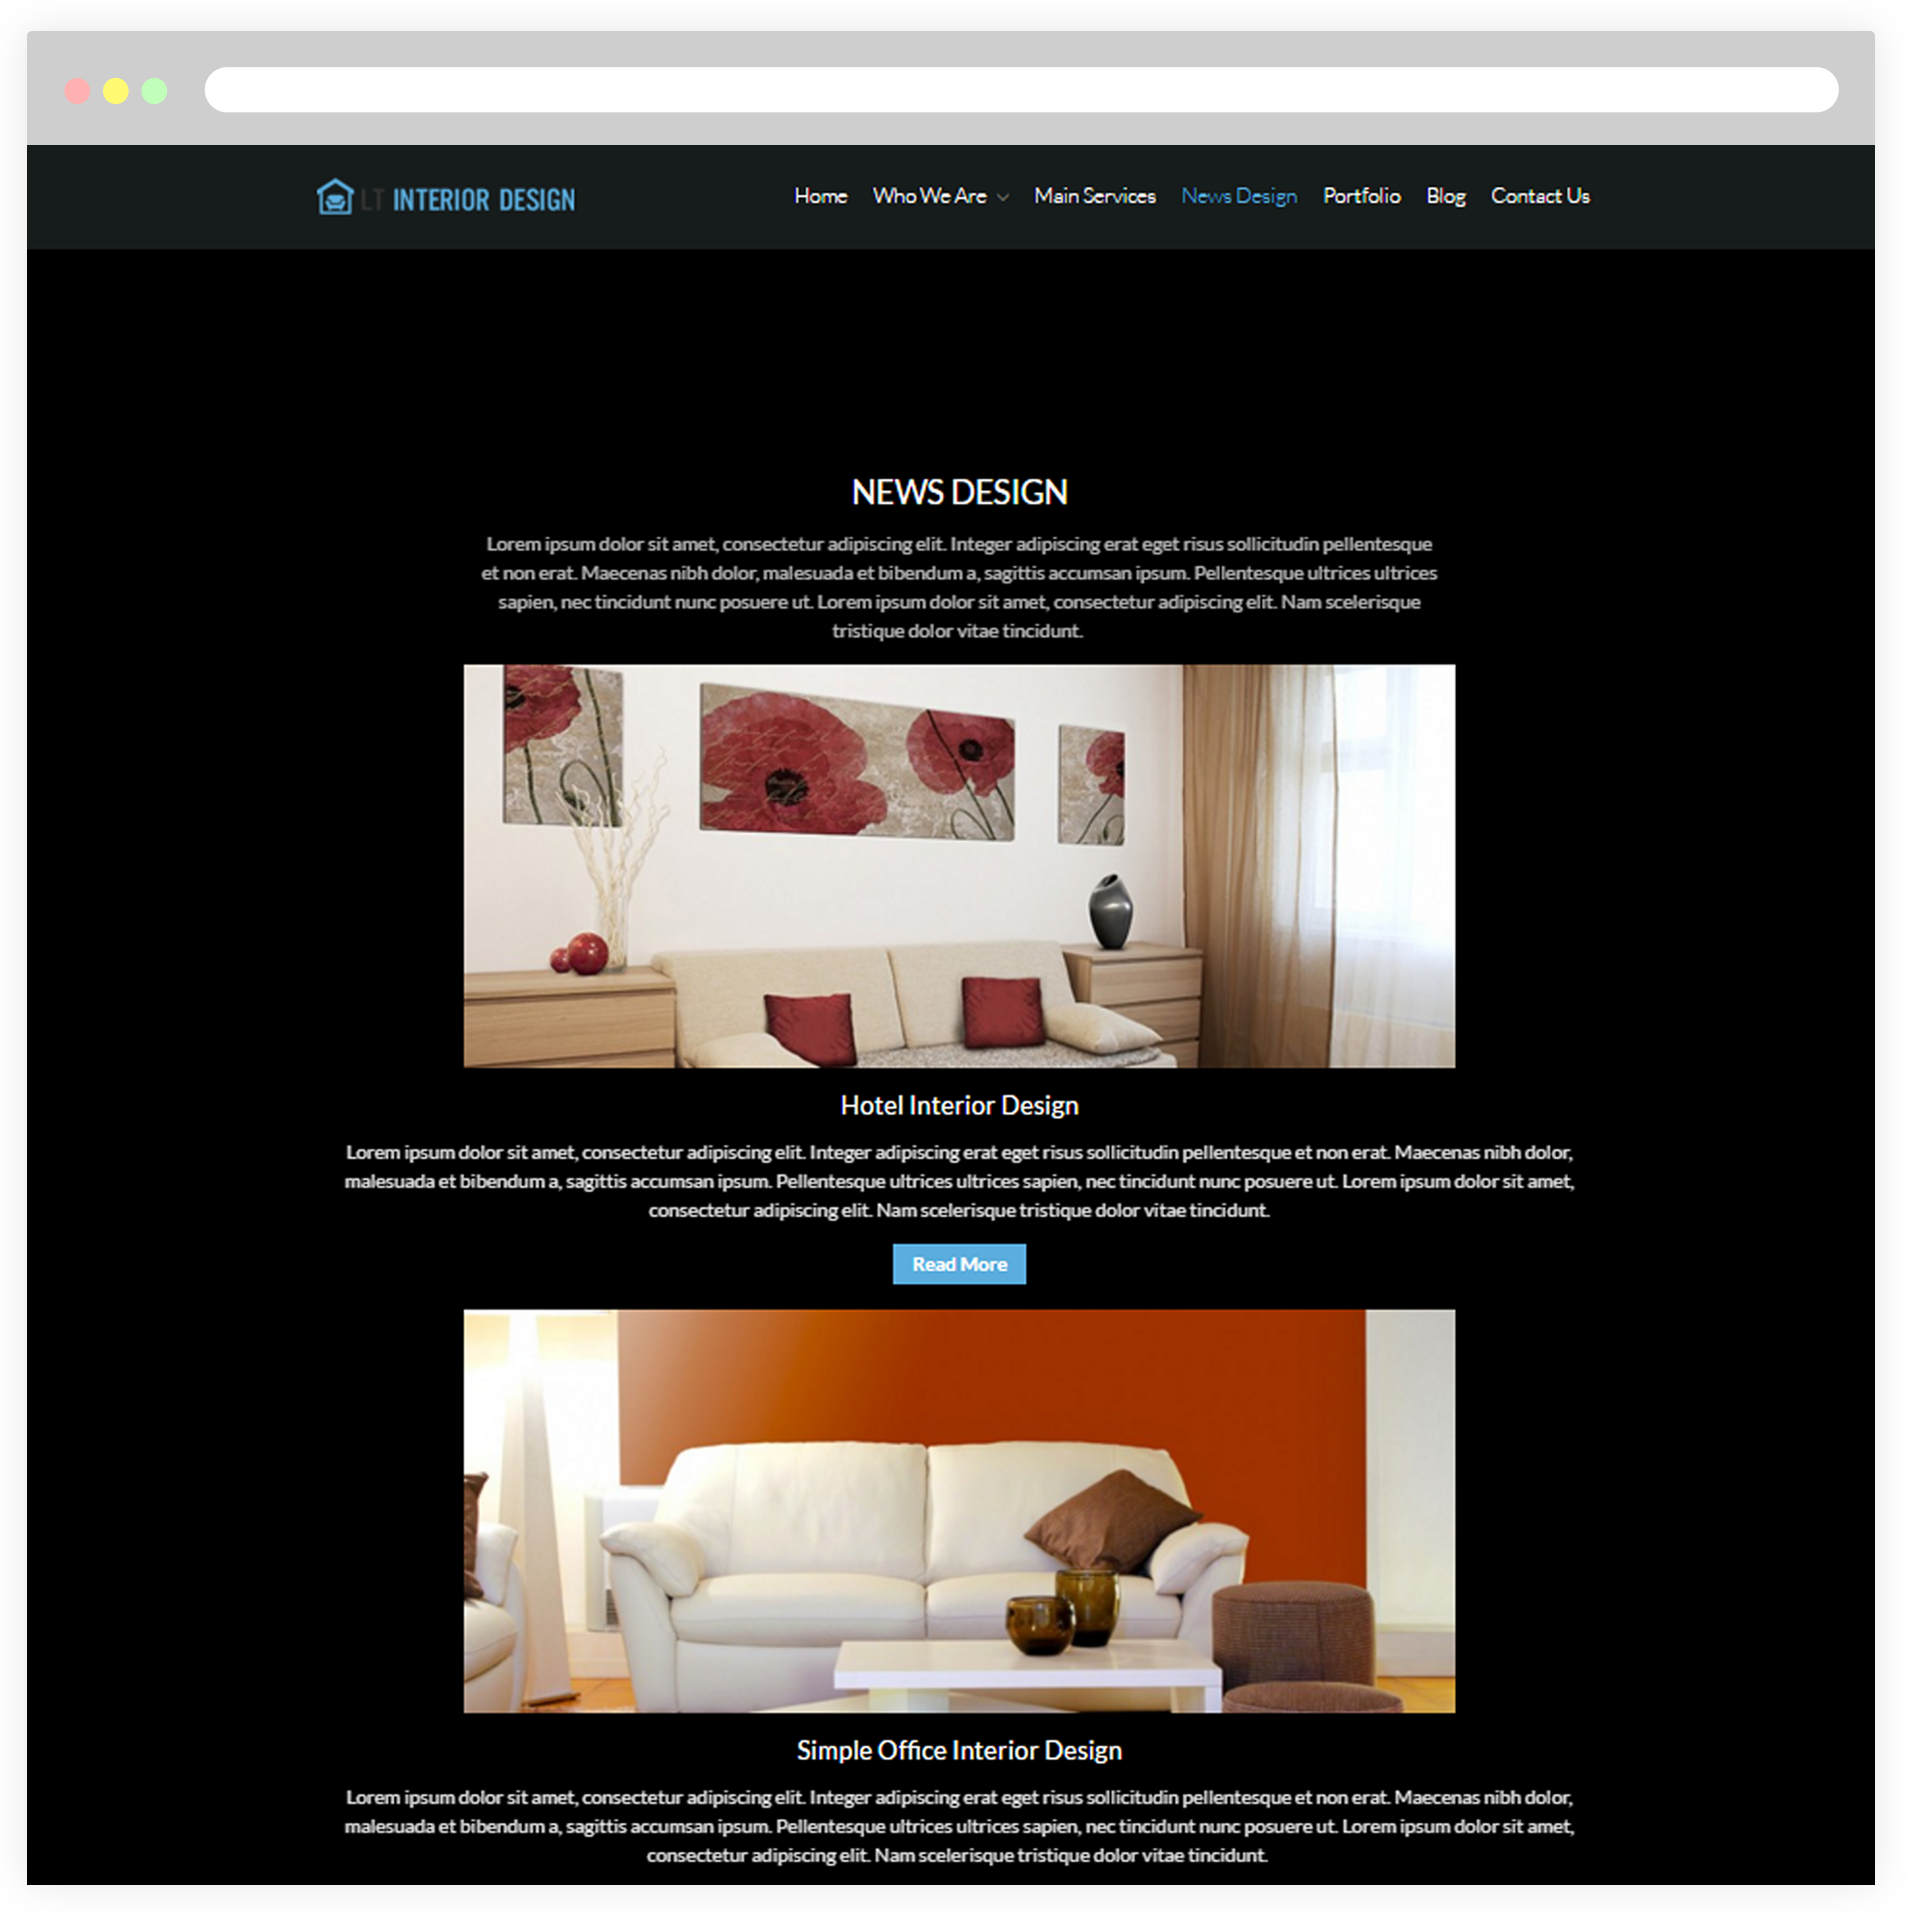 Interior design home page - News Design Page